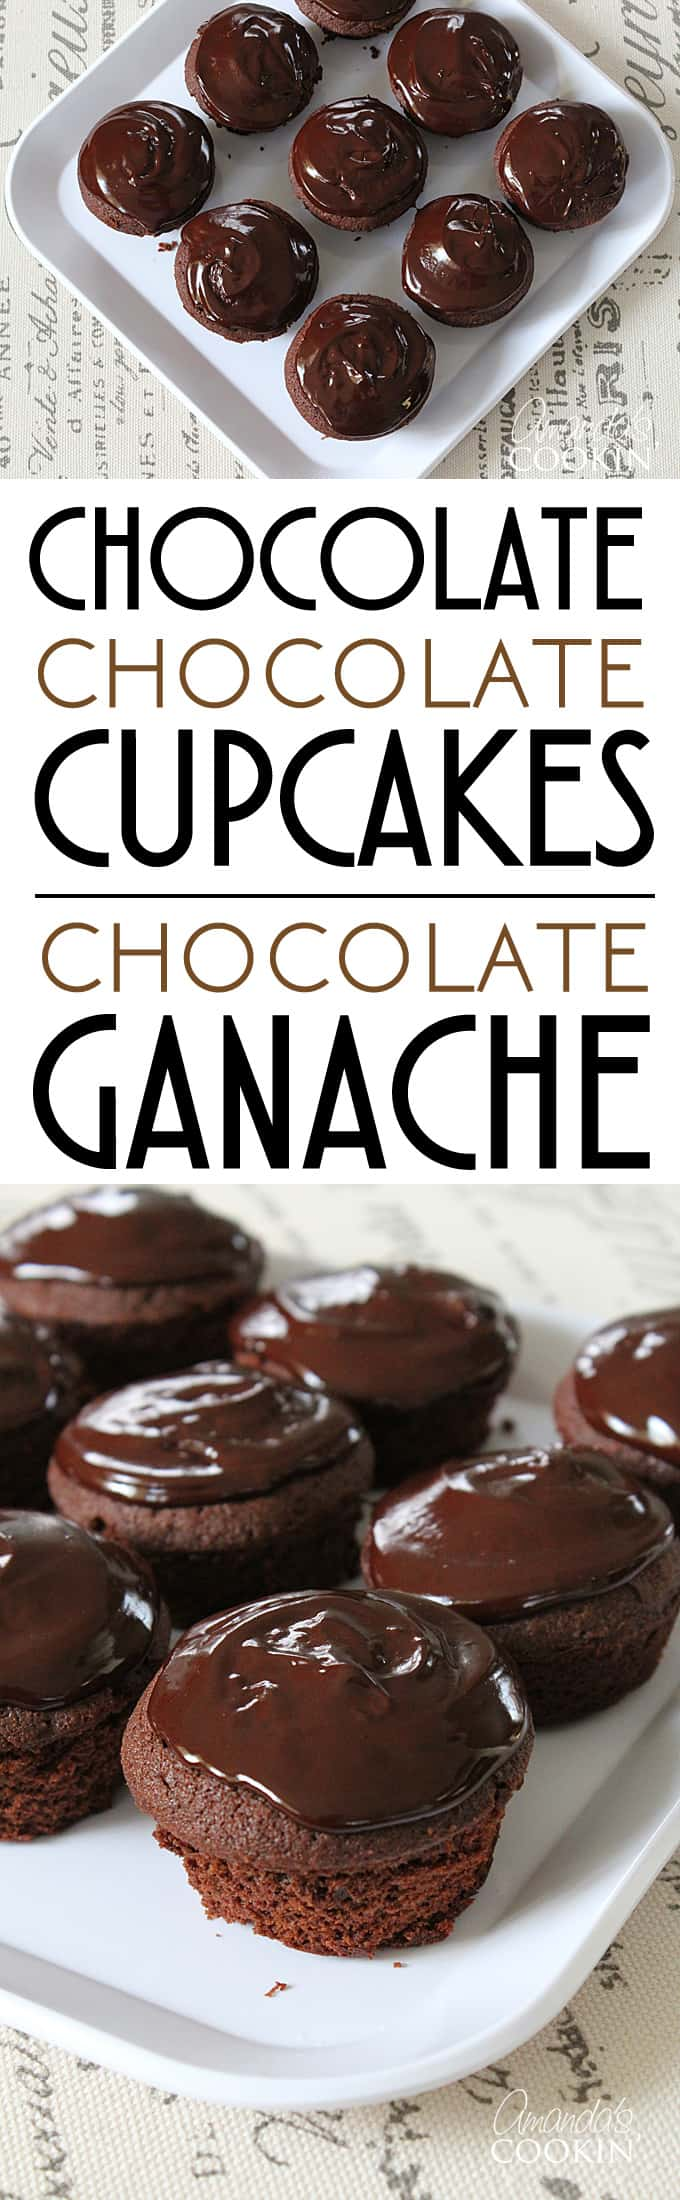 Chocolate Cupcakes with chocolate ganache from scratch